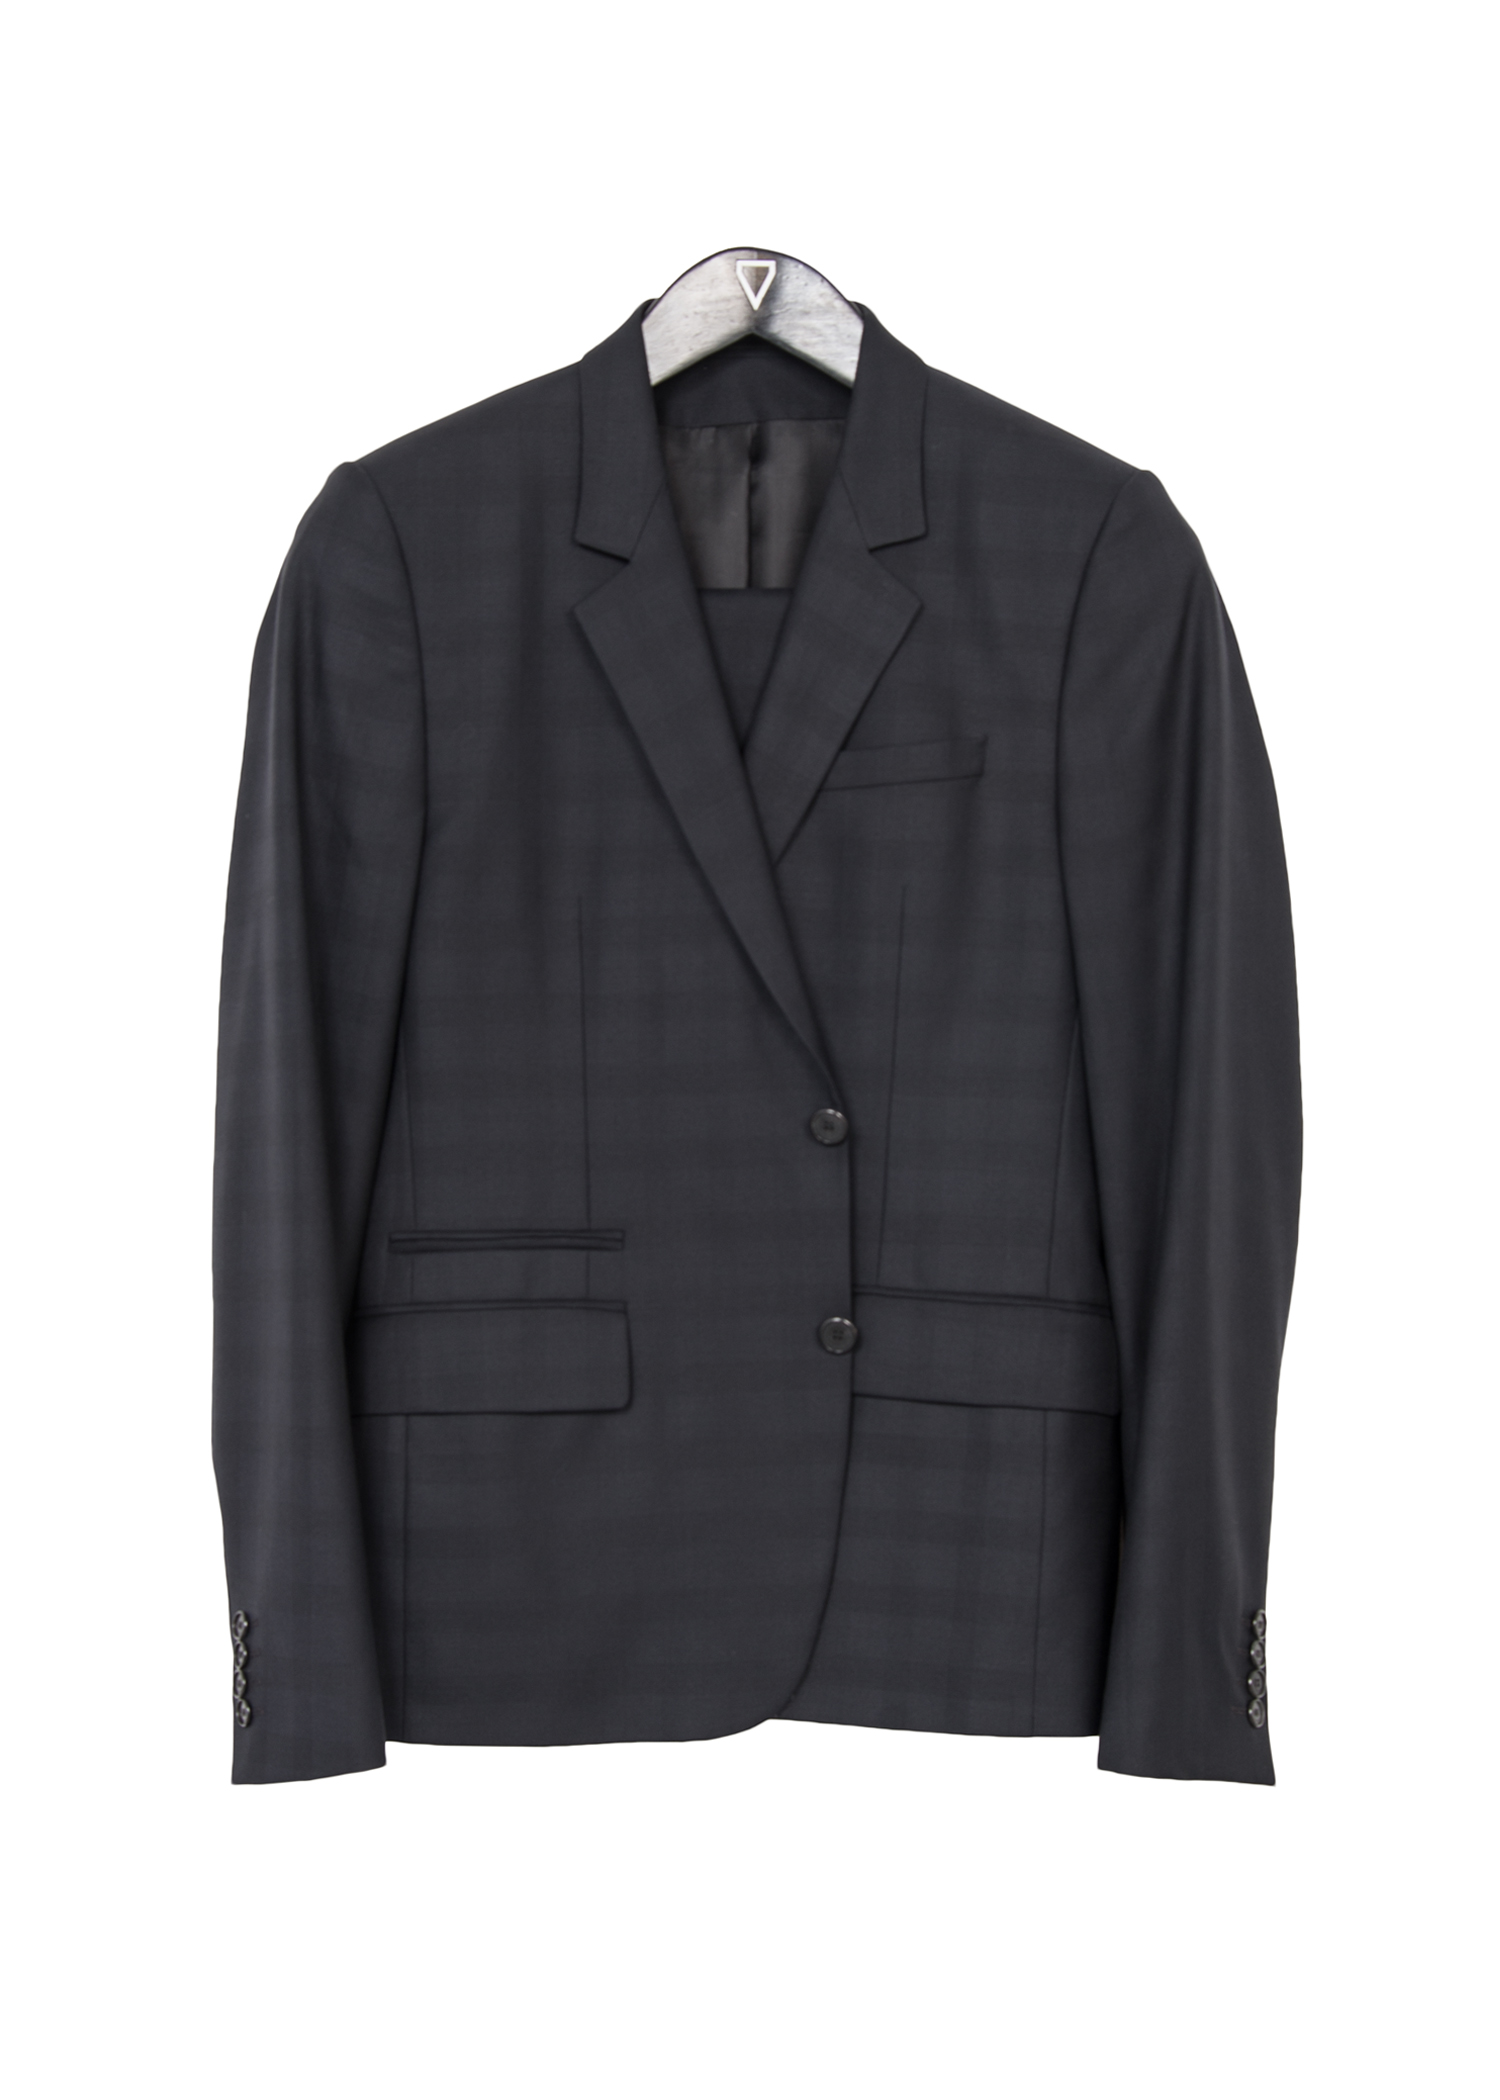 "40 GIVENCHY SUIT ""GIVENCHY-SUIT01"""